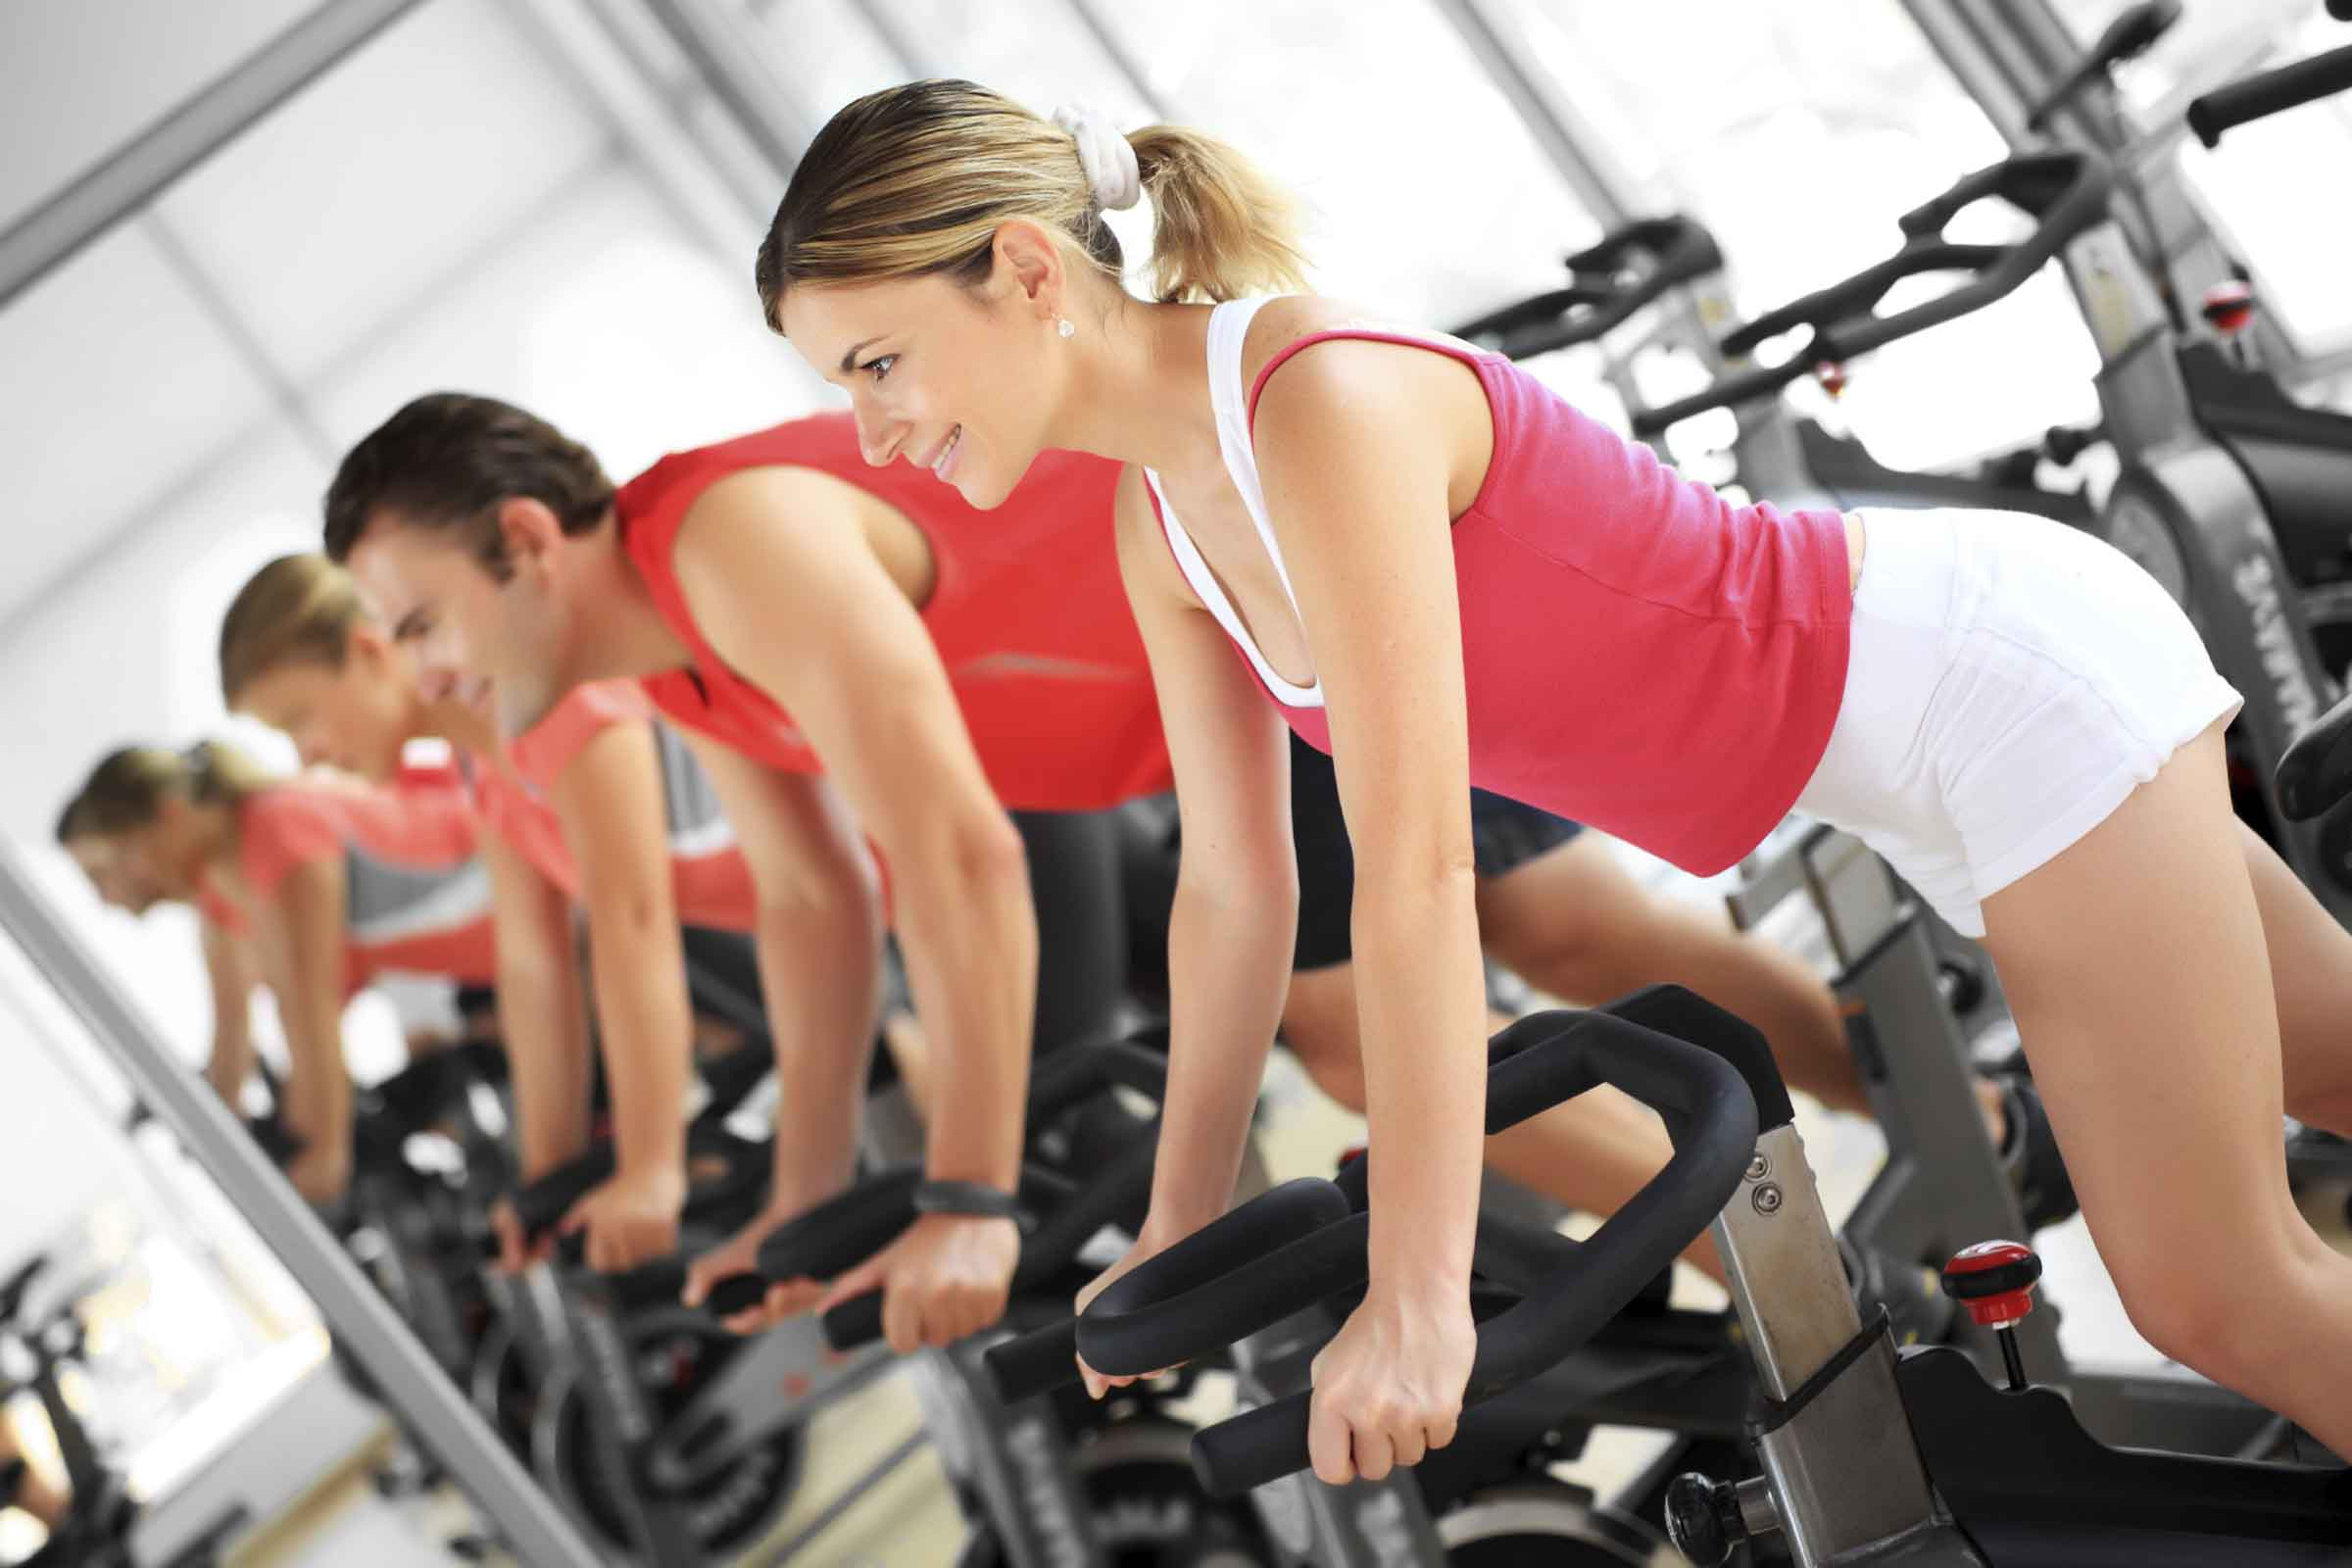 Gym is equally important to increase beauty, to improve health as the balanced diet